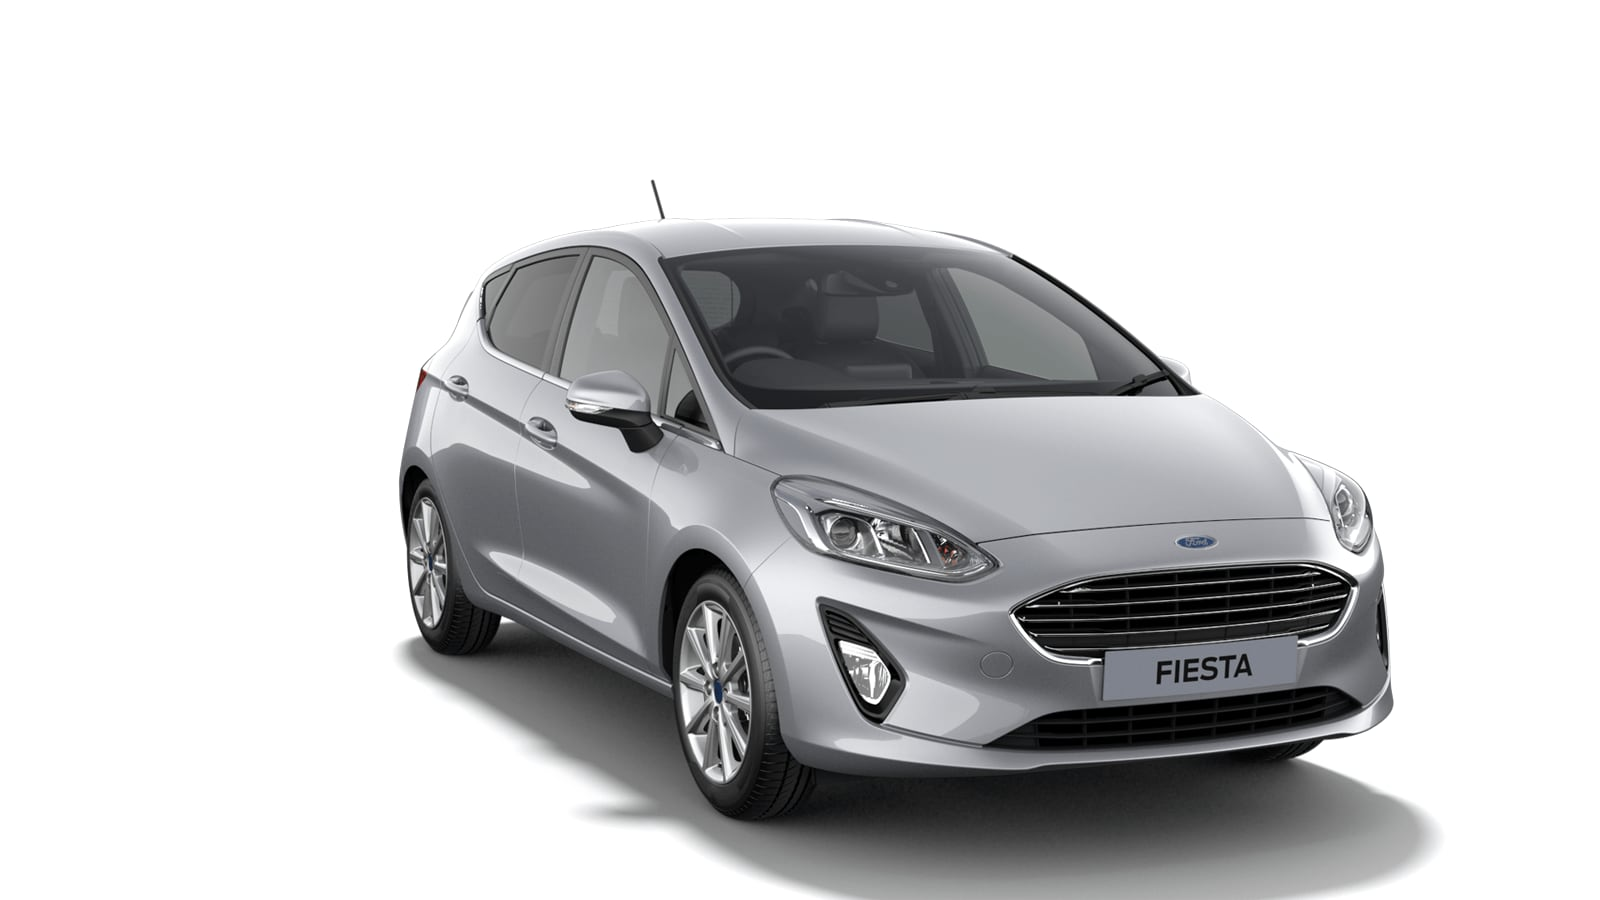 https://www.dealerinternet.co.uk/images/FIESTA%20B299/2020.25/5%20Door/Titanium/MOONDUST-SILVER.png